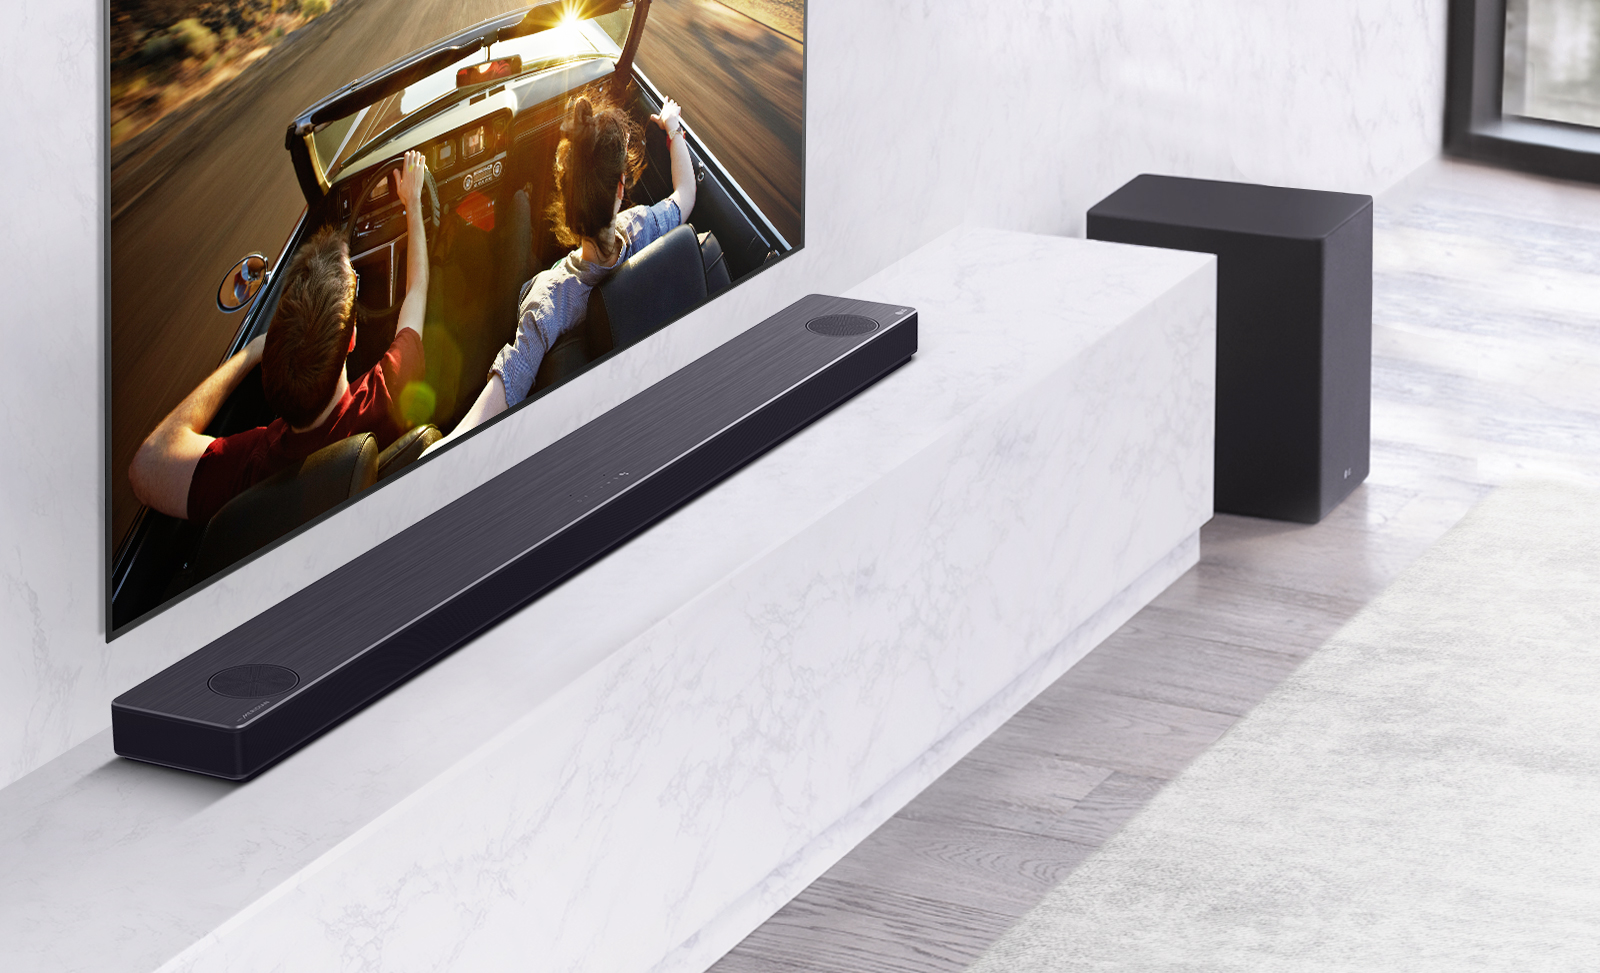 LG Soundbar model SN11RG installed on a shelf under an LG TV as it delivers truly dynamic sounds